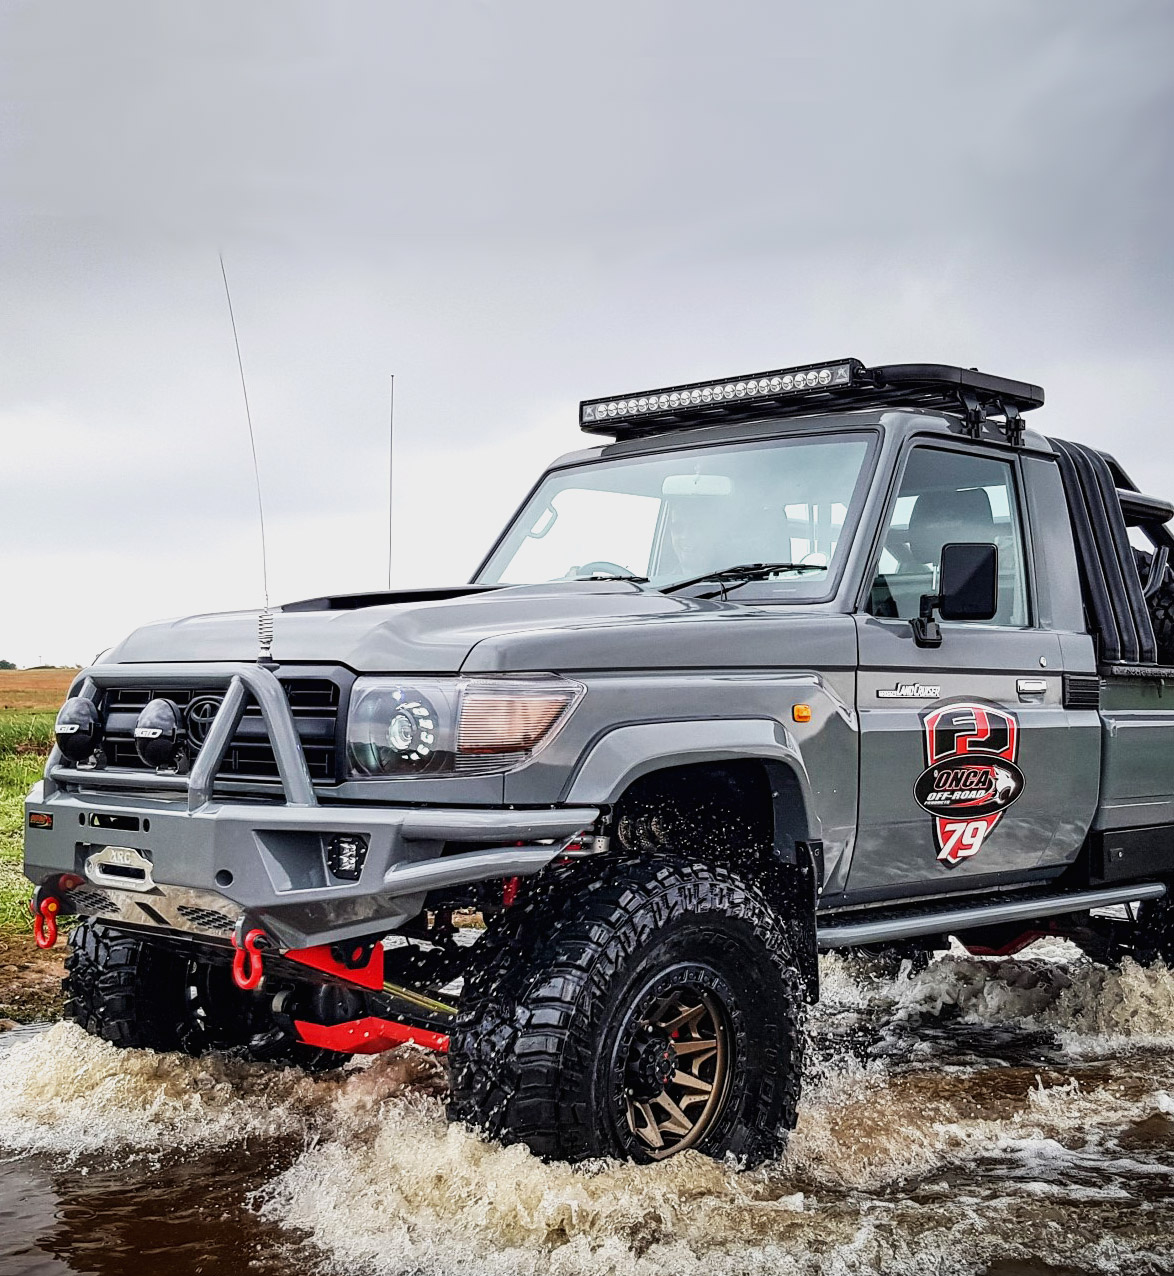 Onca Off Road Bull Bars Tow Bars Rock Sliders Products South Africa Manufacturers Of Heavy Duty 4x4 Equipment